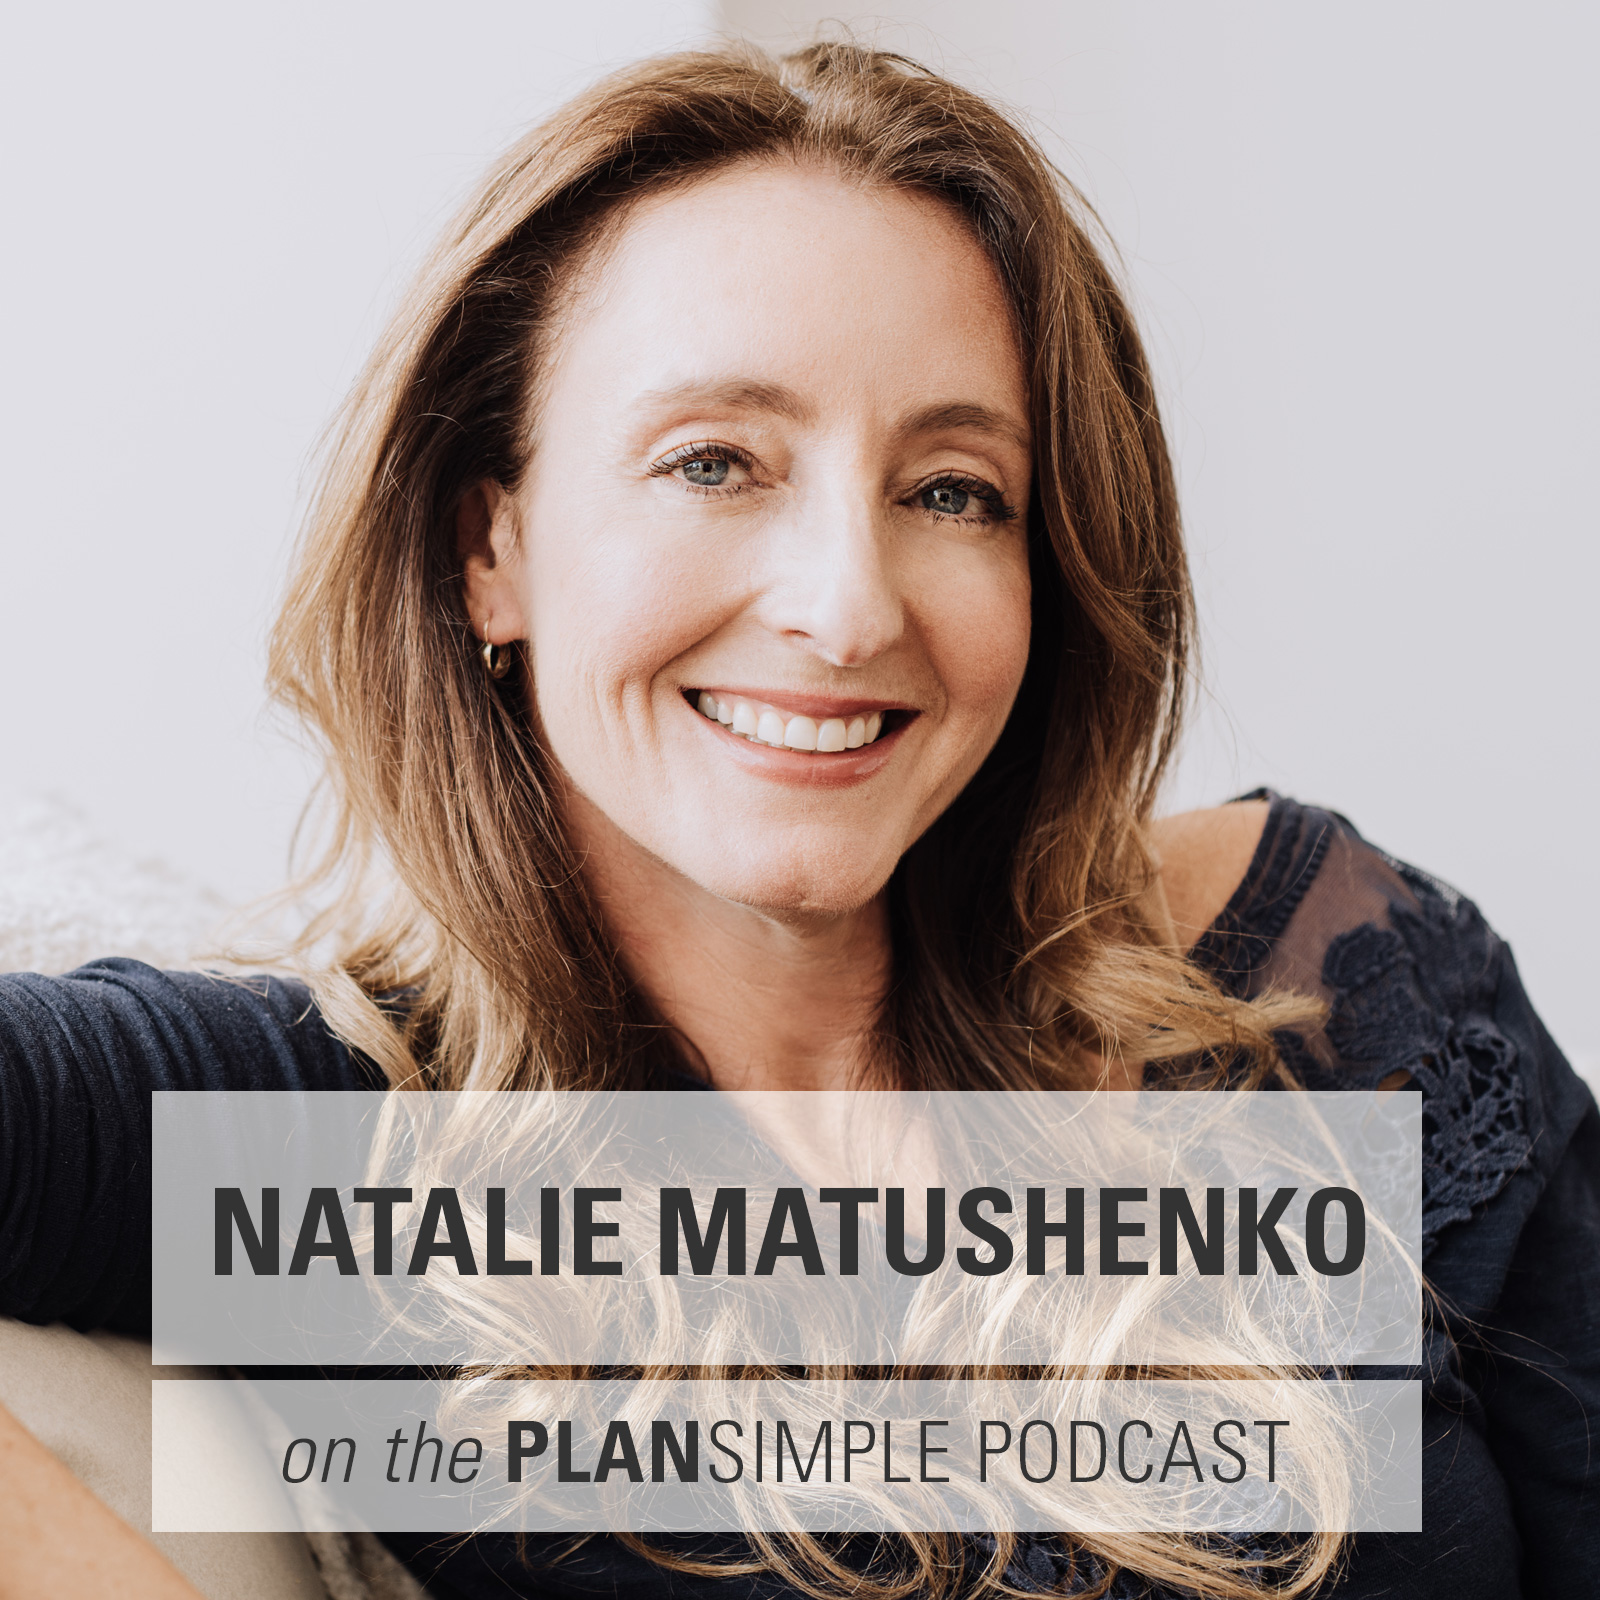 Life After 40 With Natalie Matushenko